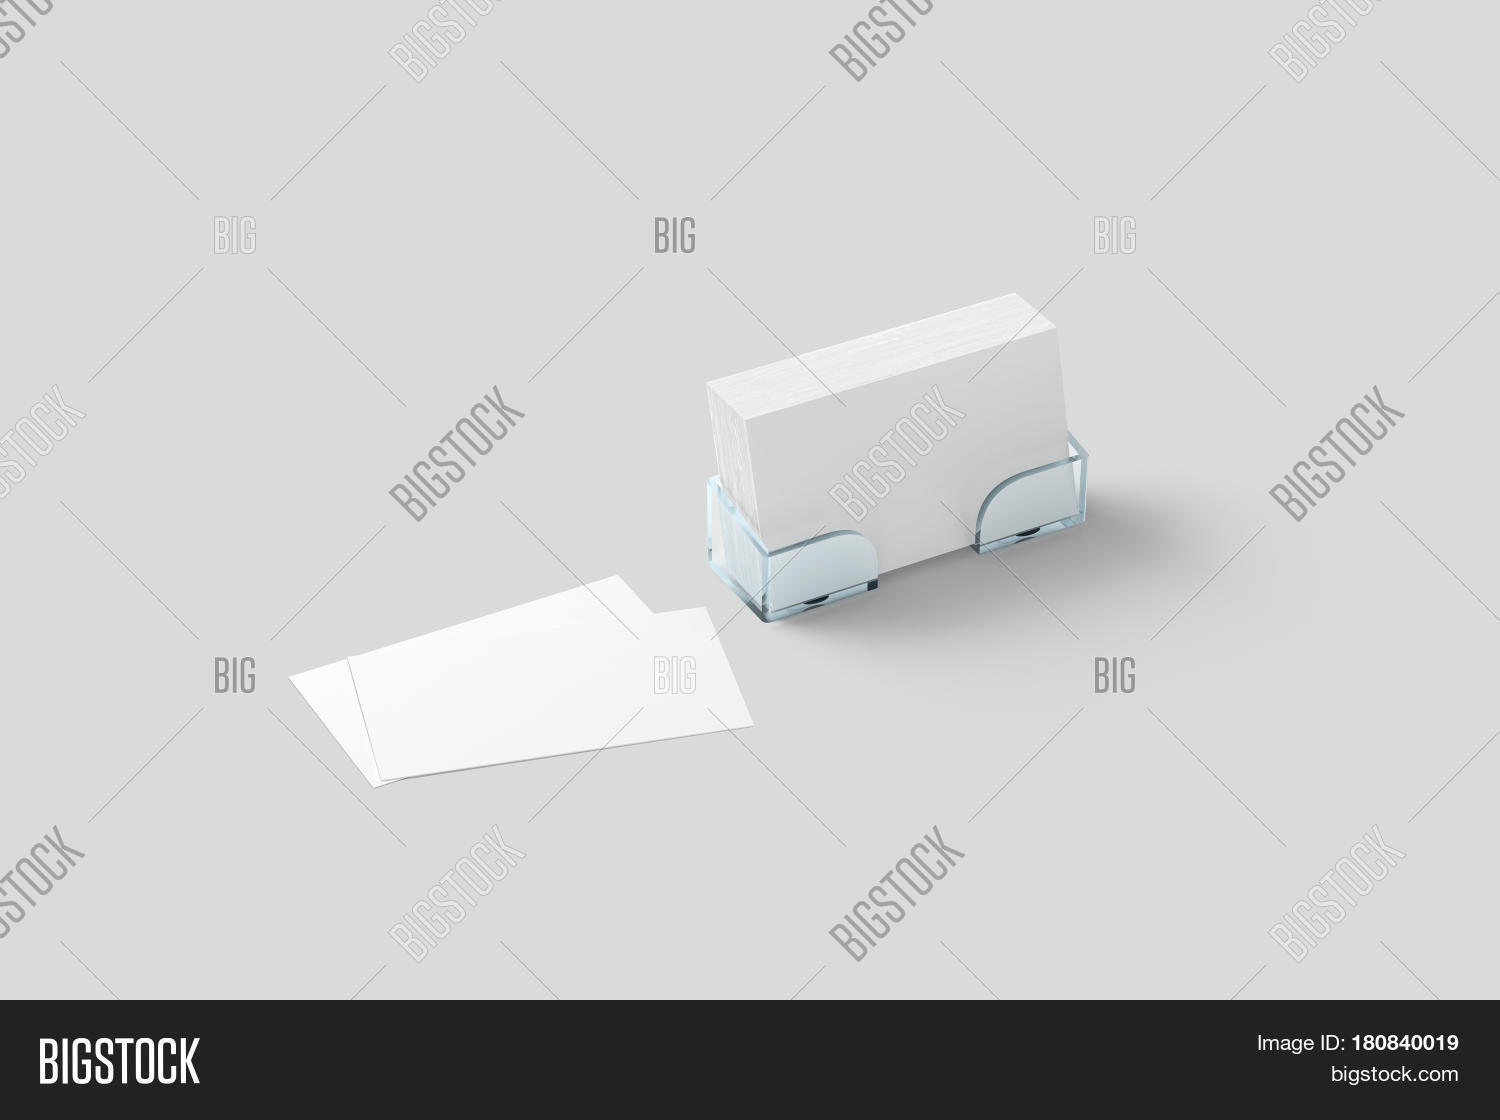 White business card mockup acrylic image photo bigstock white business card mockup in acrylic holder isolated plastic transparent glass box with blank namecards reheart Images